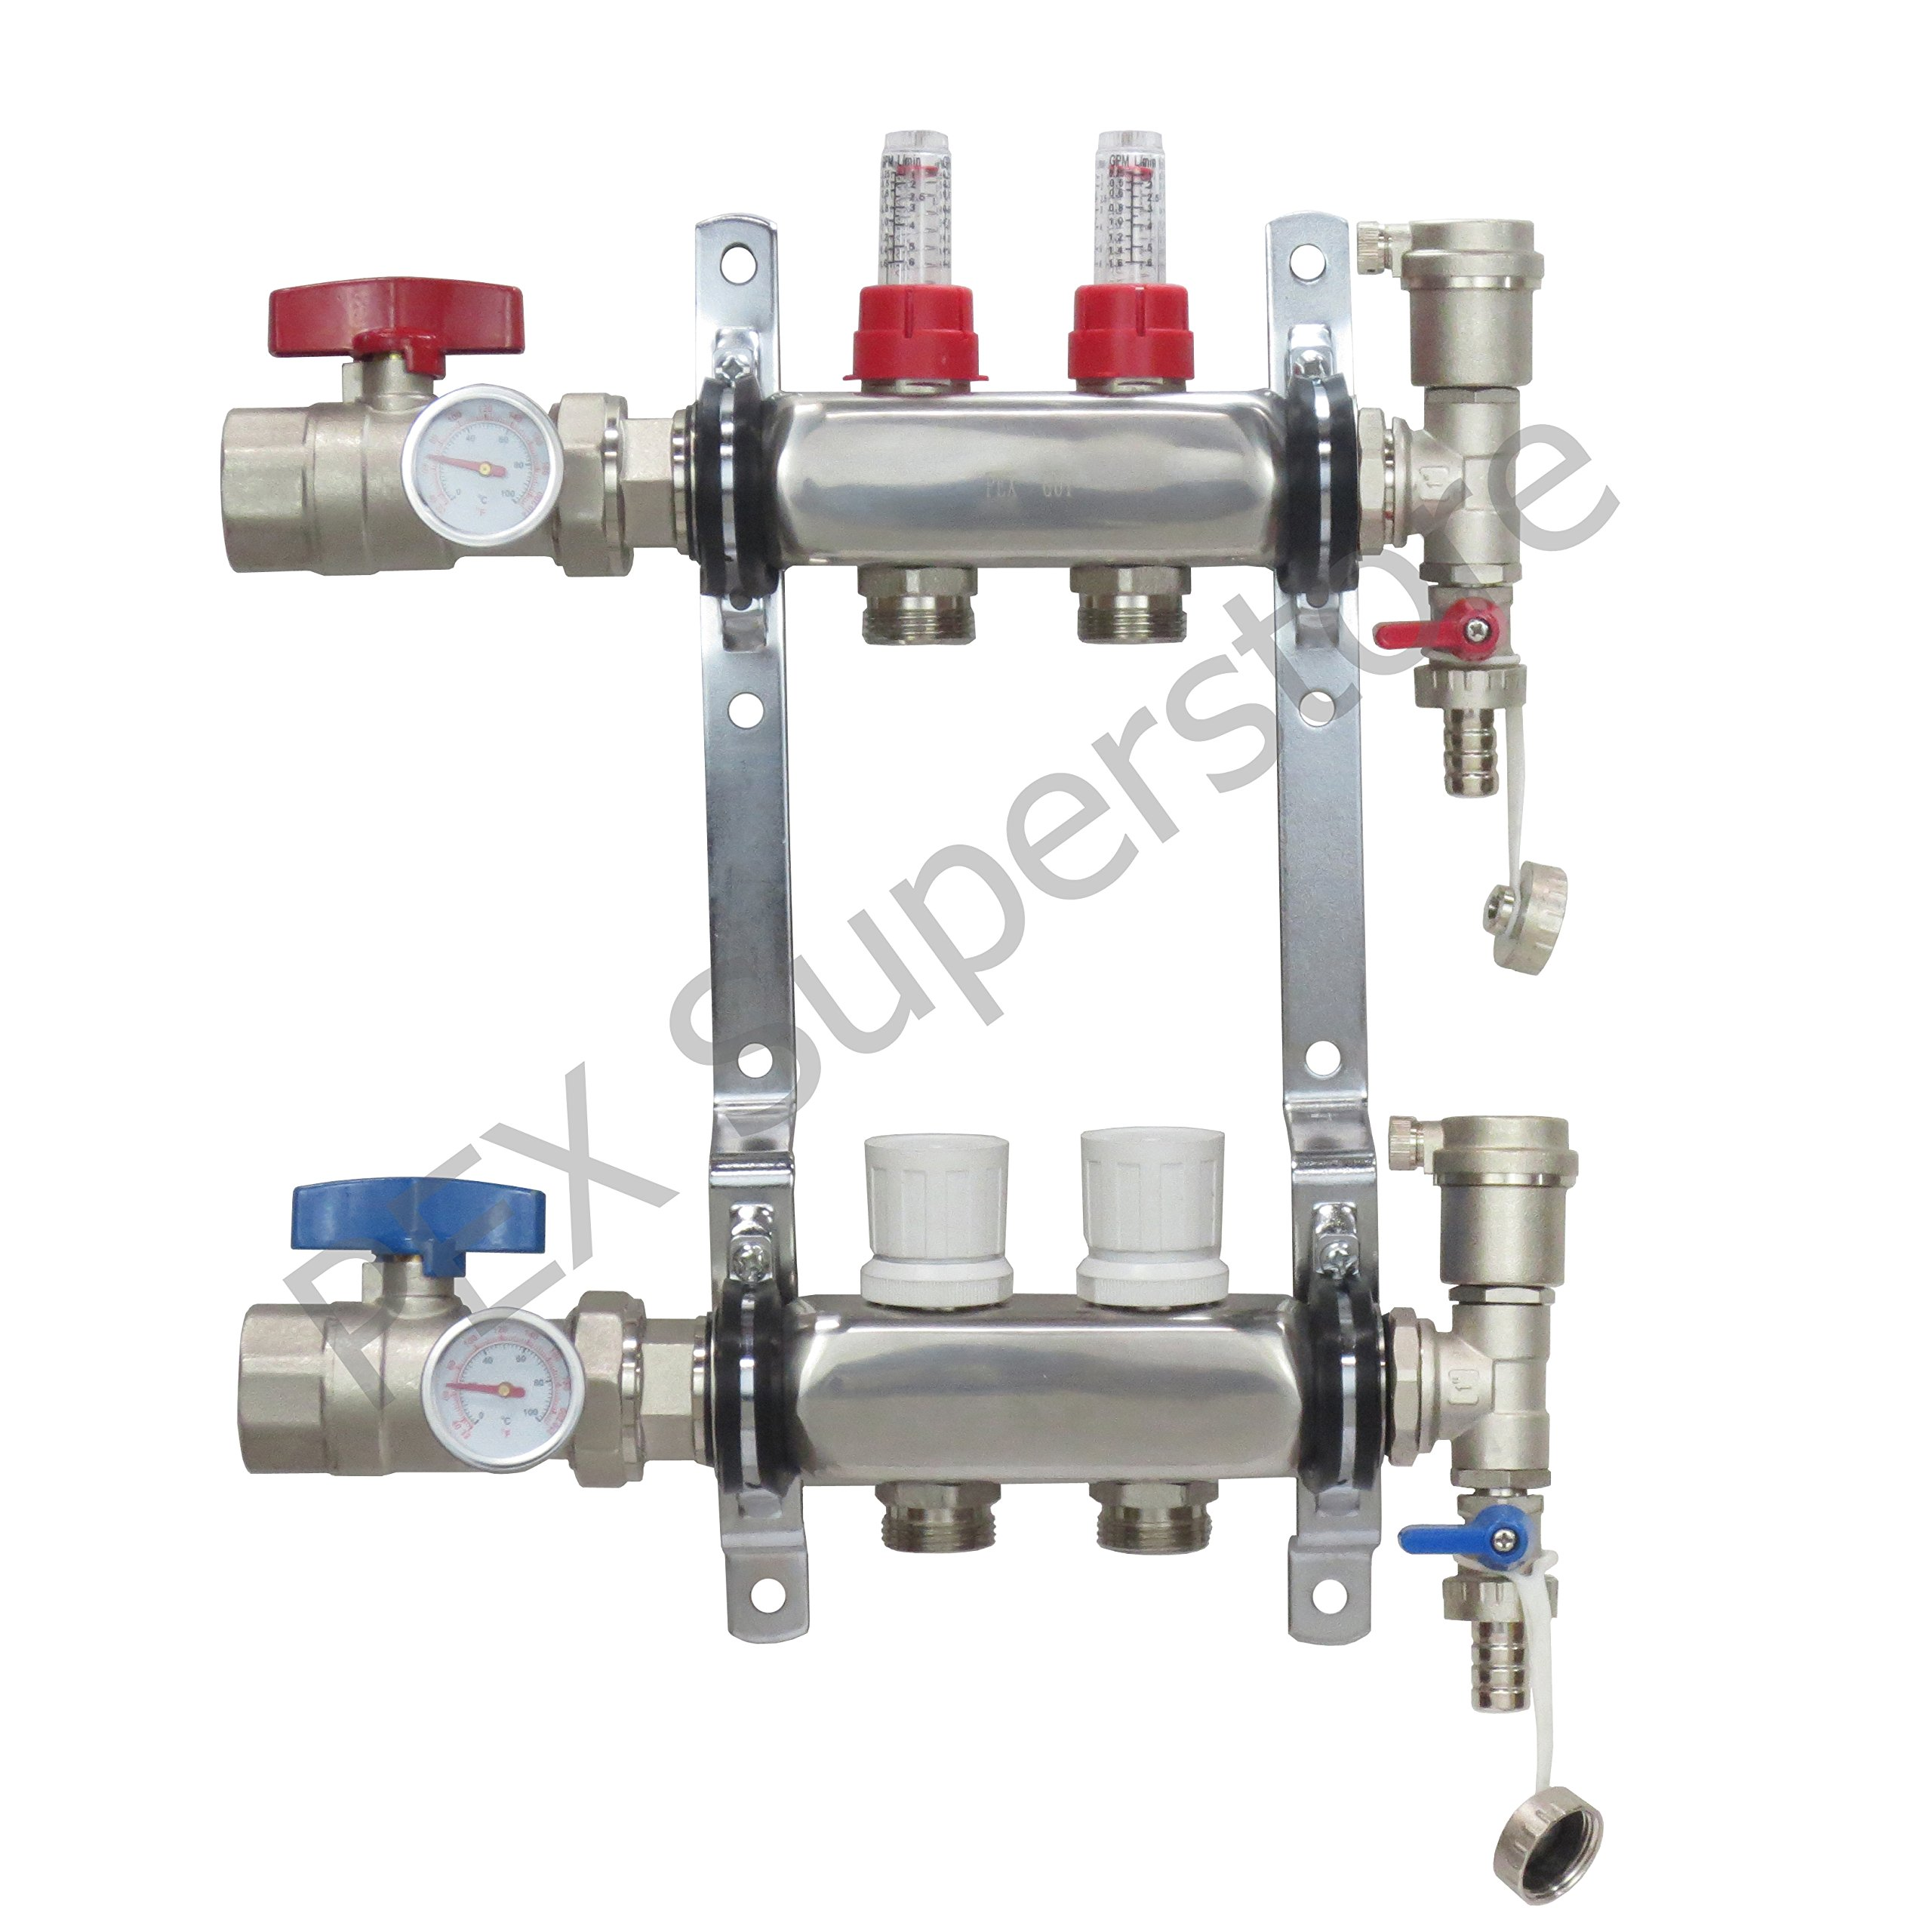 2 Loop Stainless Steel PEX Manifold With 1/2'' Connectors - Genuine PEX GUY